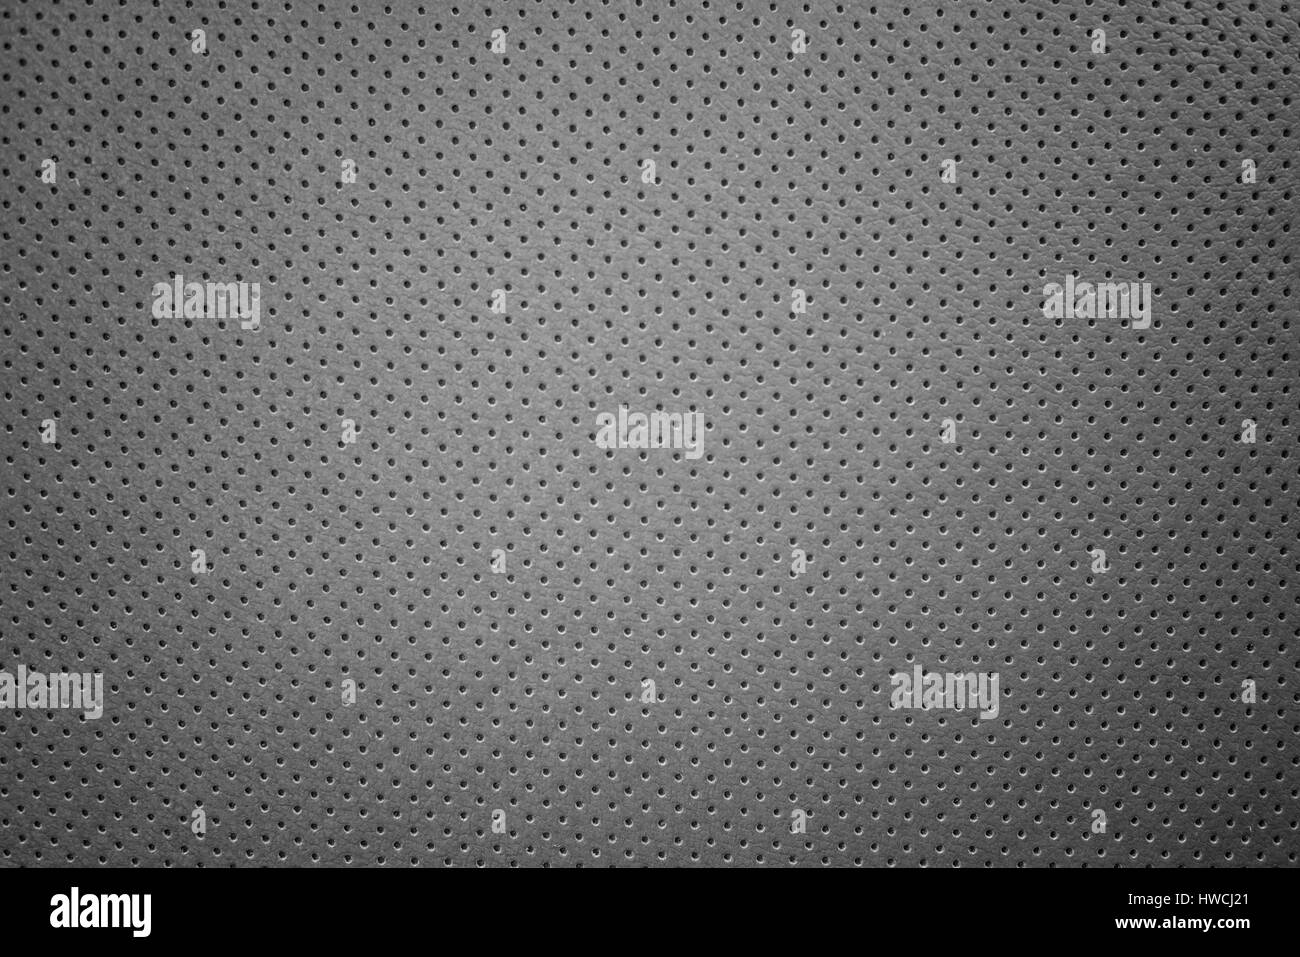 Leather with perforations - Stock Image